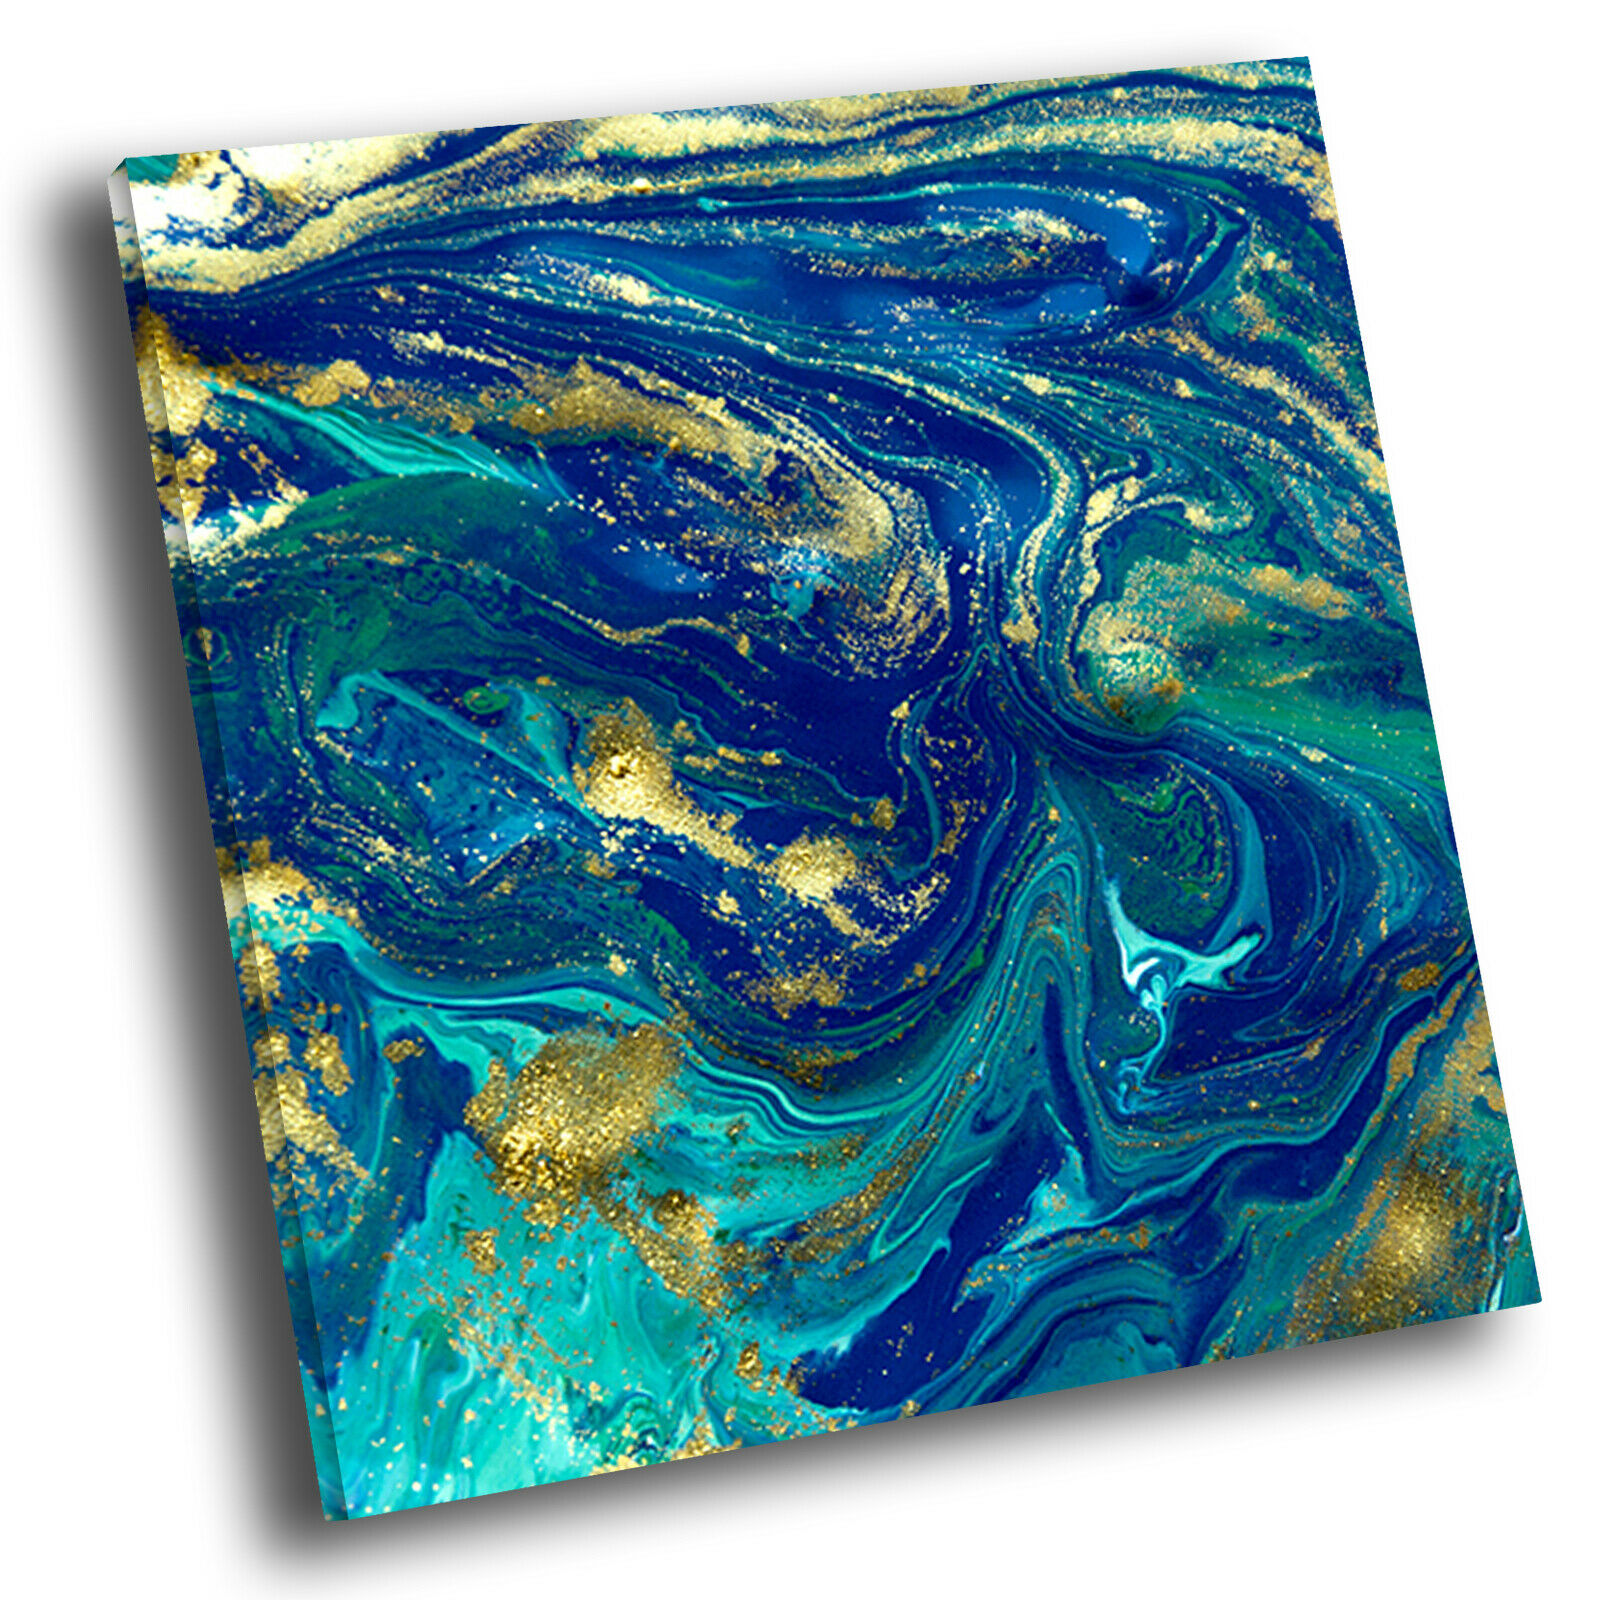 Blau Teal Gelb  Square Abstract Photo Canvas Wall Art Large Picture Prints